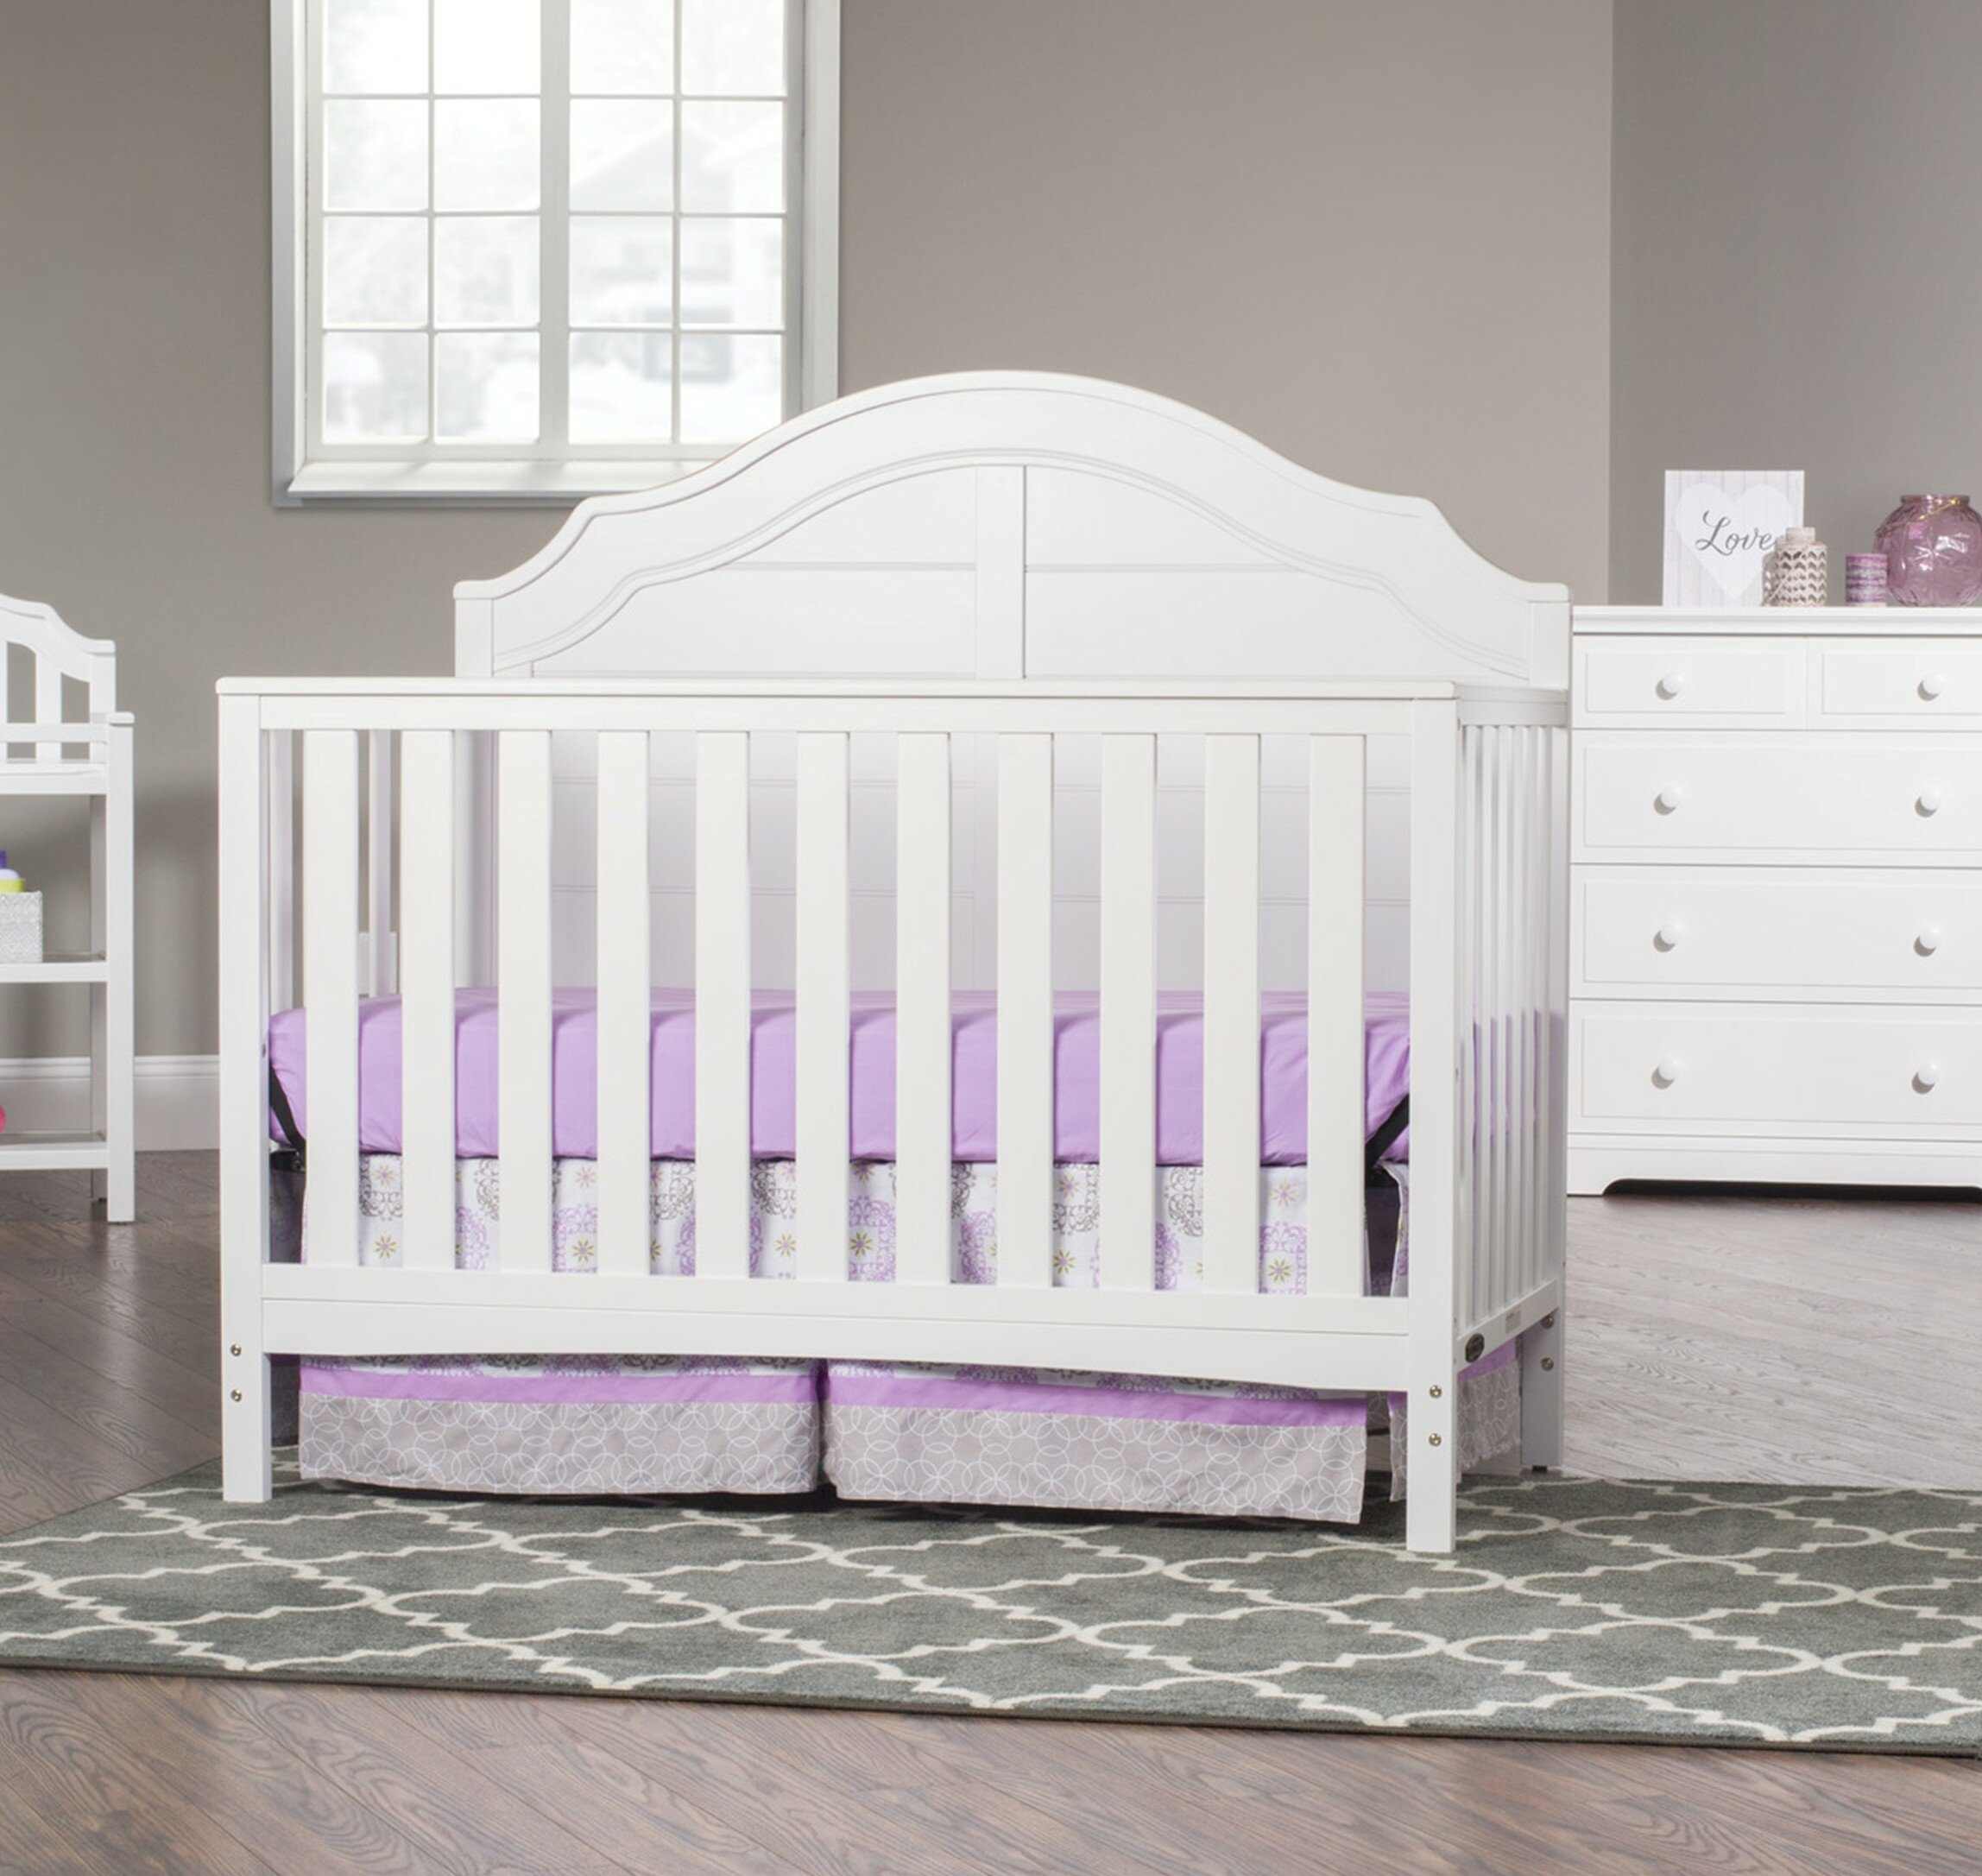 convertible nursery deals solid child boy bumper duvet drawers of crib res about and black infant sleeper underneath camden color left girl delta cribs cot bedding with craft bedside full children bed size large gateway cute sets things baby ddler